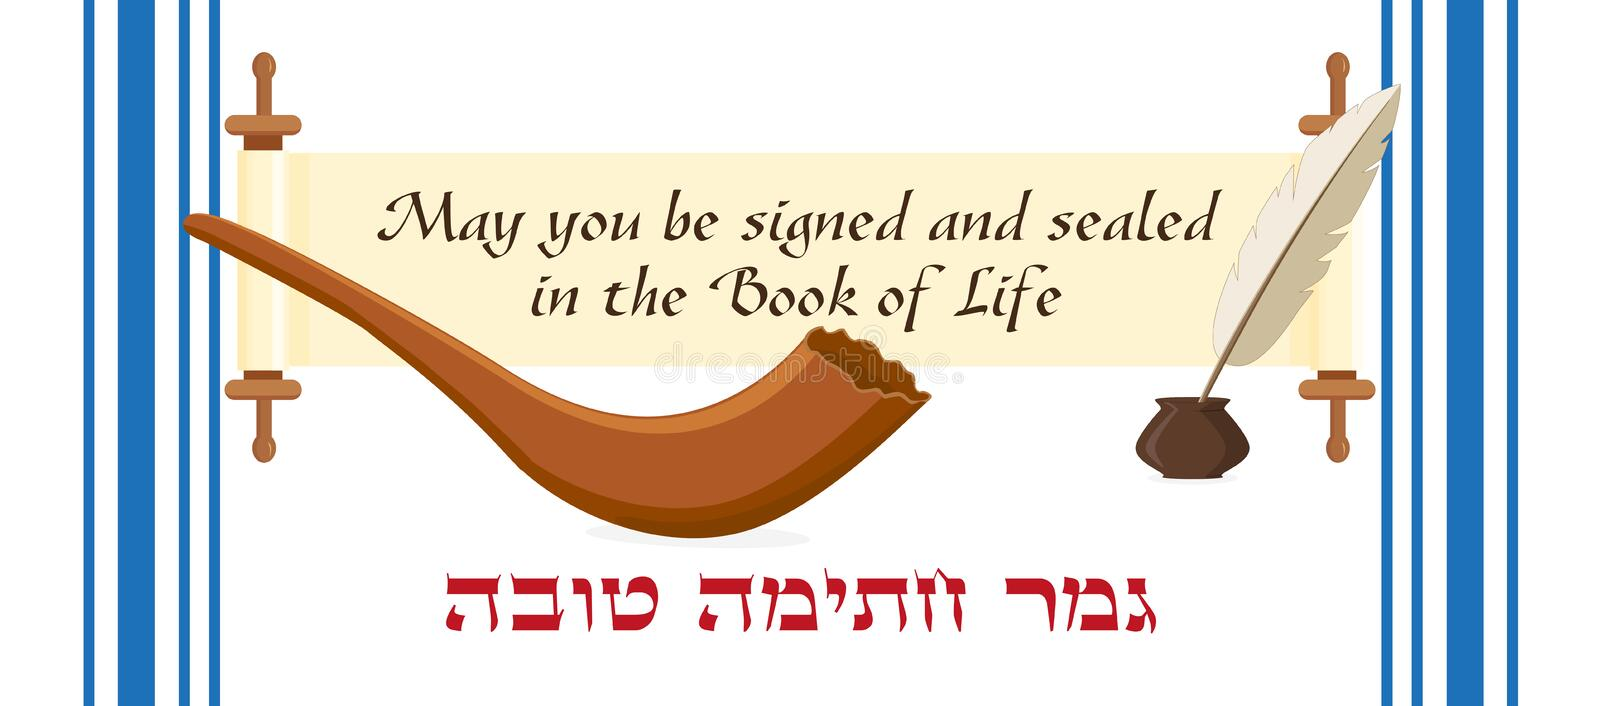 Jewish holiday of Yom Kippur, greeting banner. With scroll, Jewish greeting - May you be inscribed for good in the Book of Life, shofar - musical horn, quill royalty free illustration